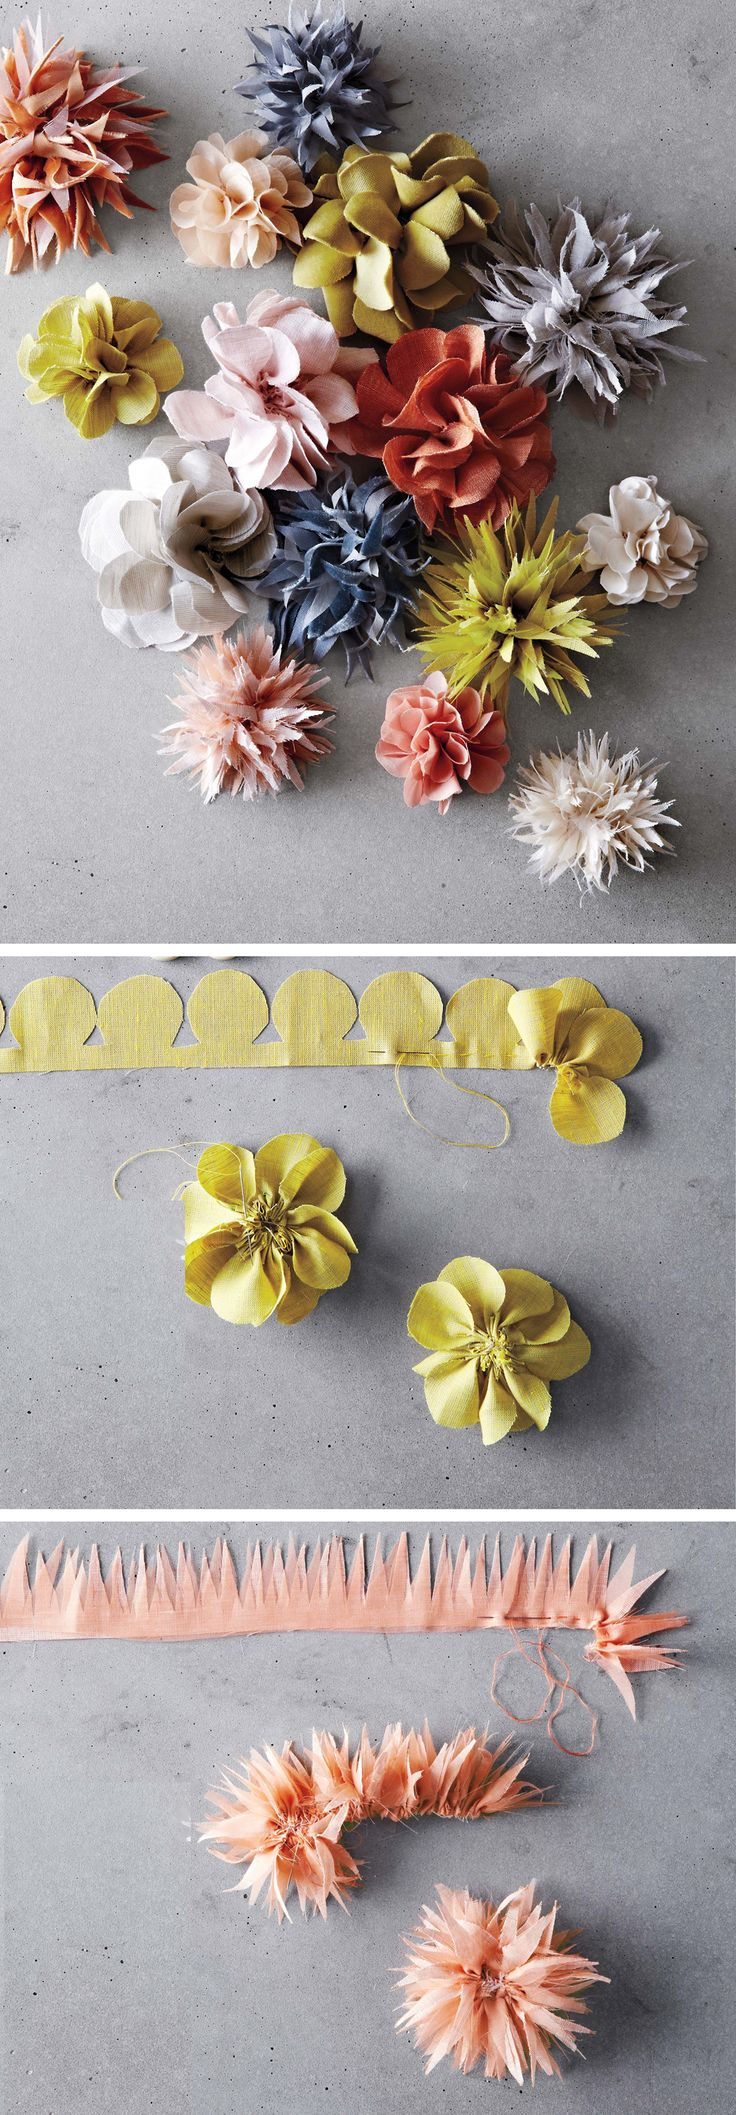 DIY Fabric Flowers- I feel like this is something you would be good at/we could do at cadhay! @day2972